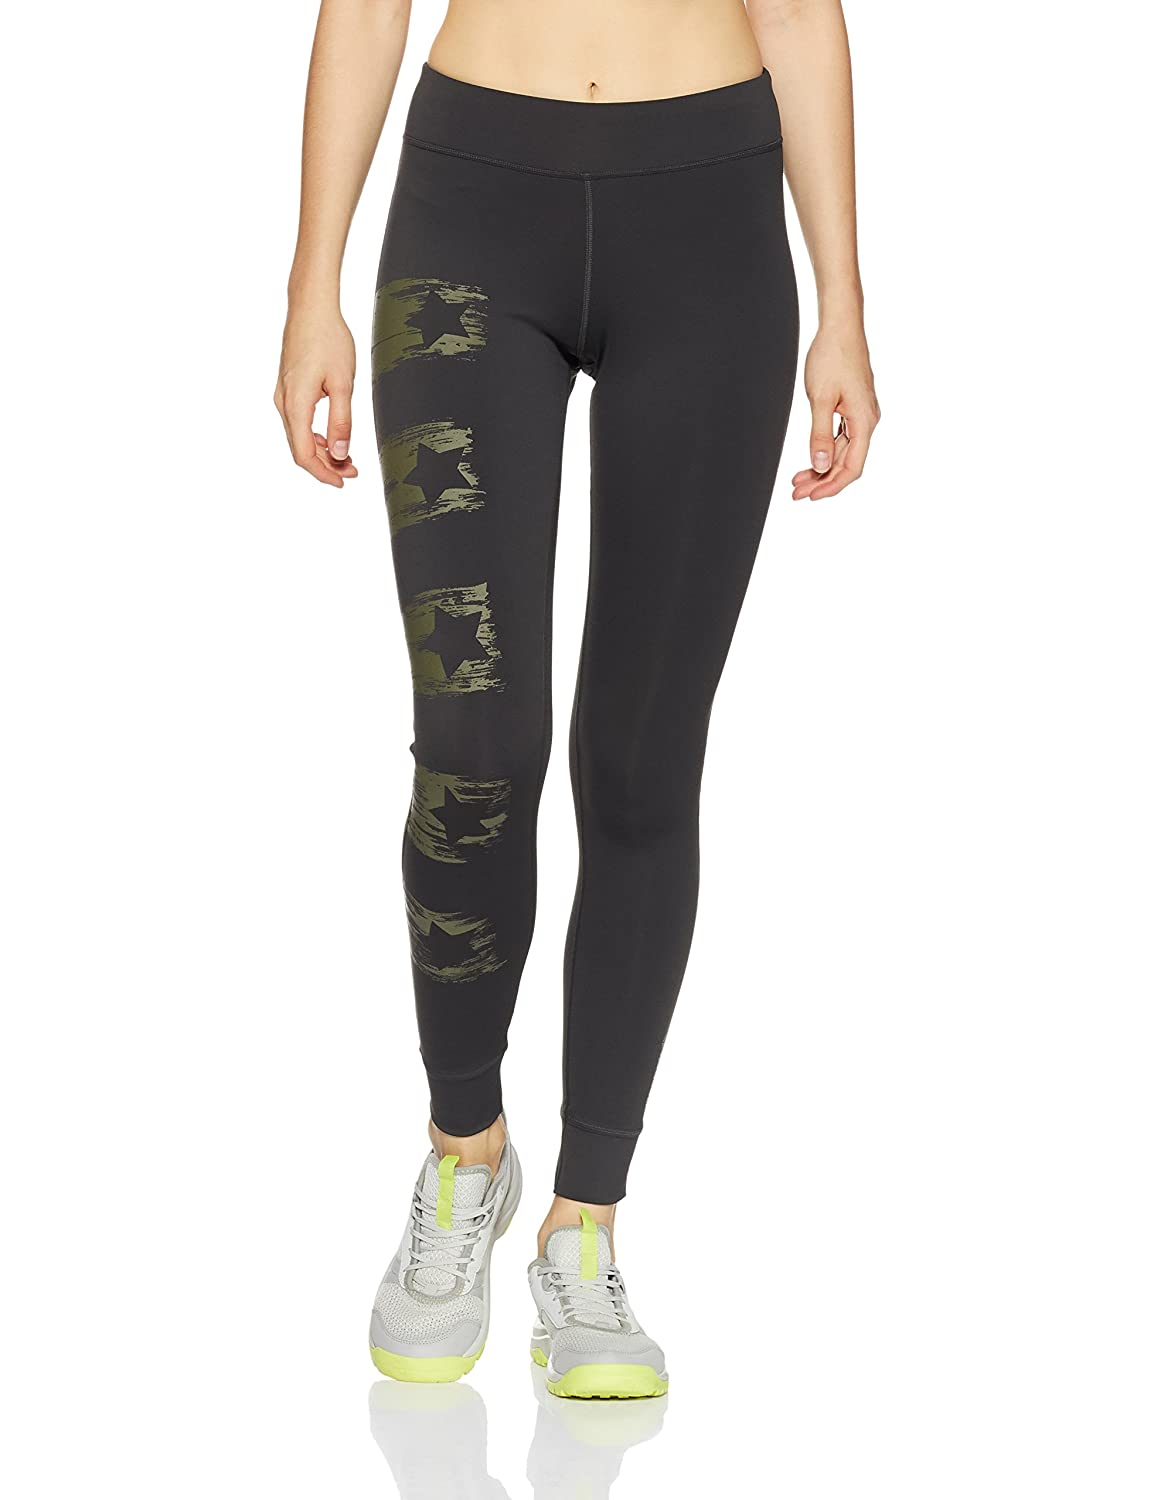 Reebok Damen Trainingshose Yoga Painted Tights